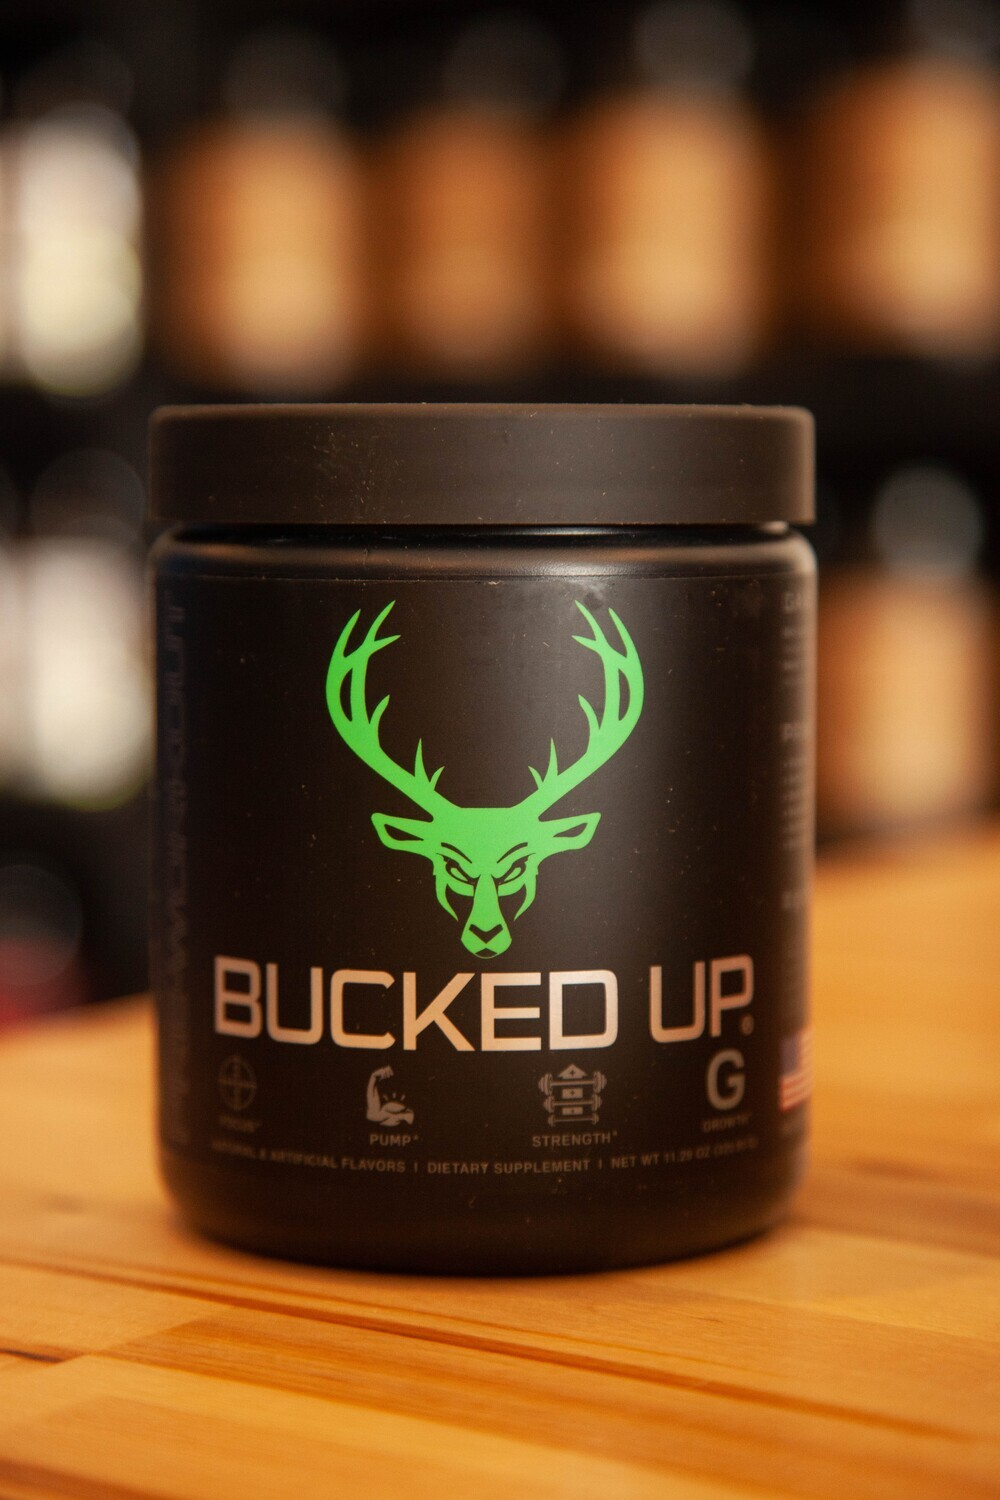 Bucked Up (Mean Green)